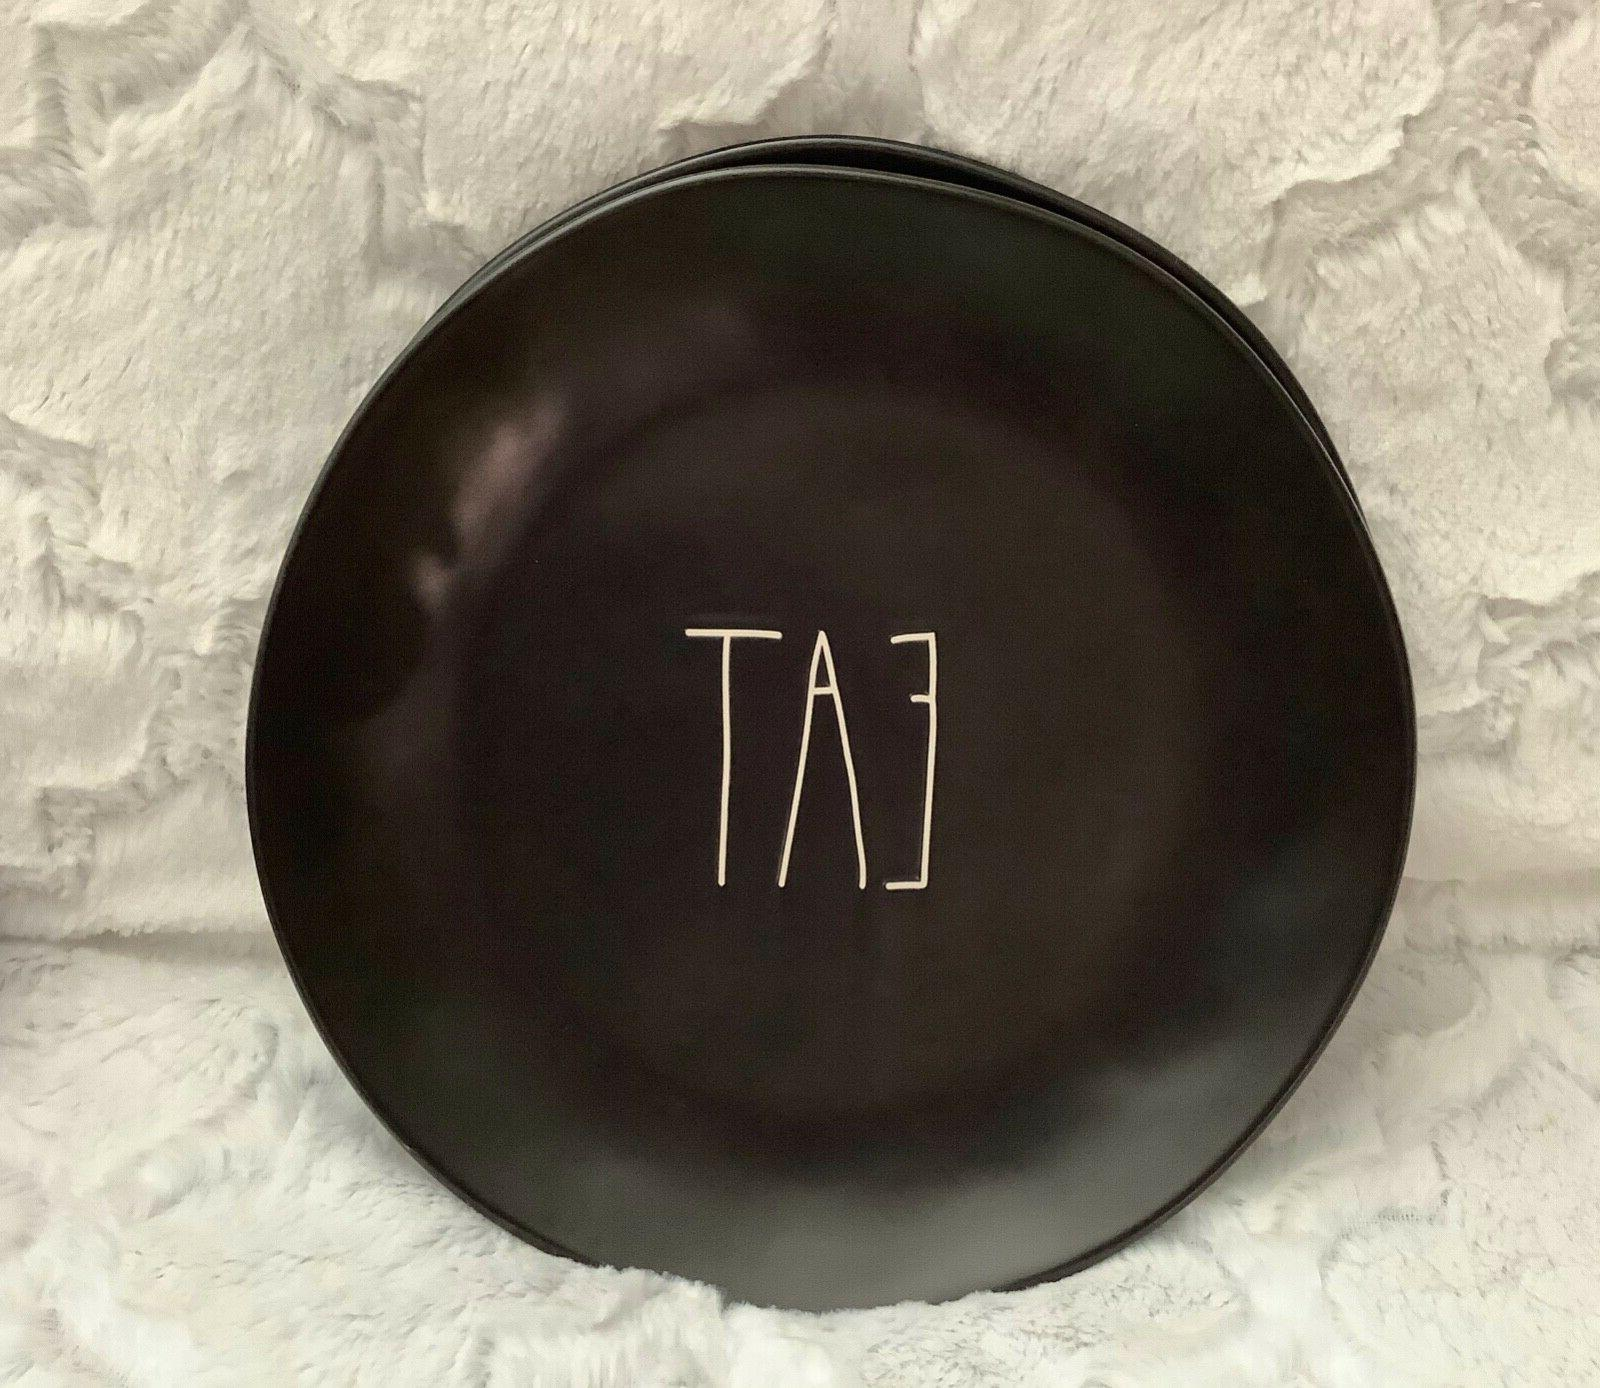 eat black 11 matte plates set of